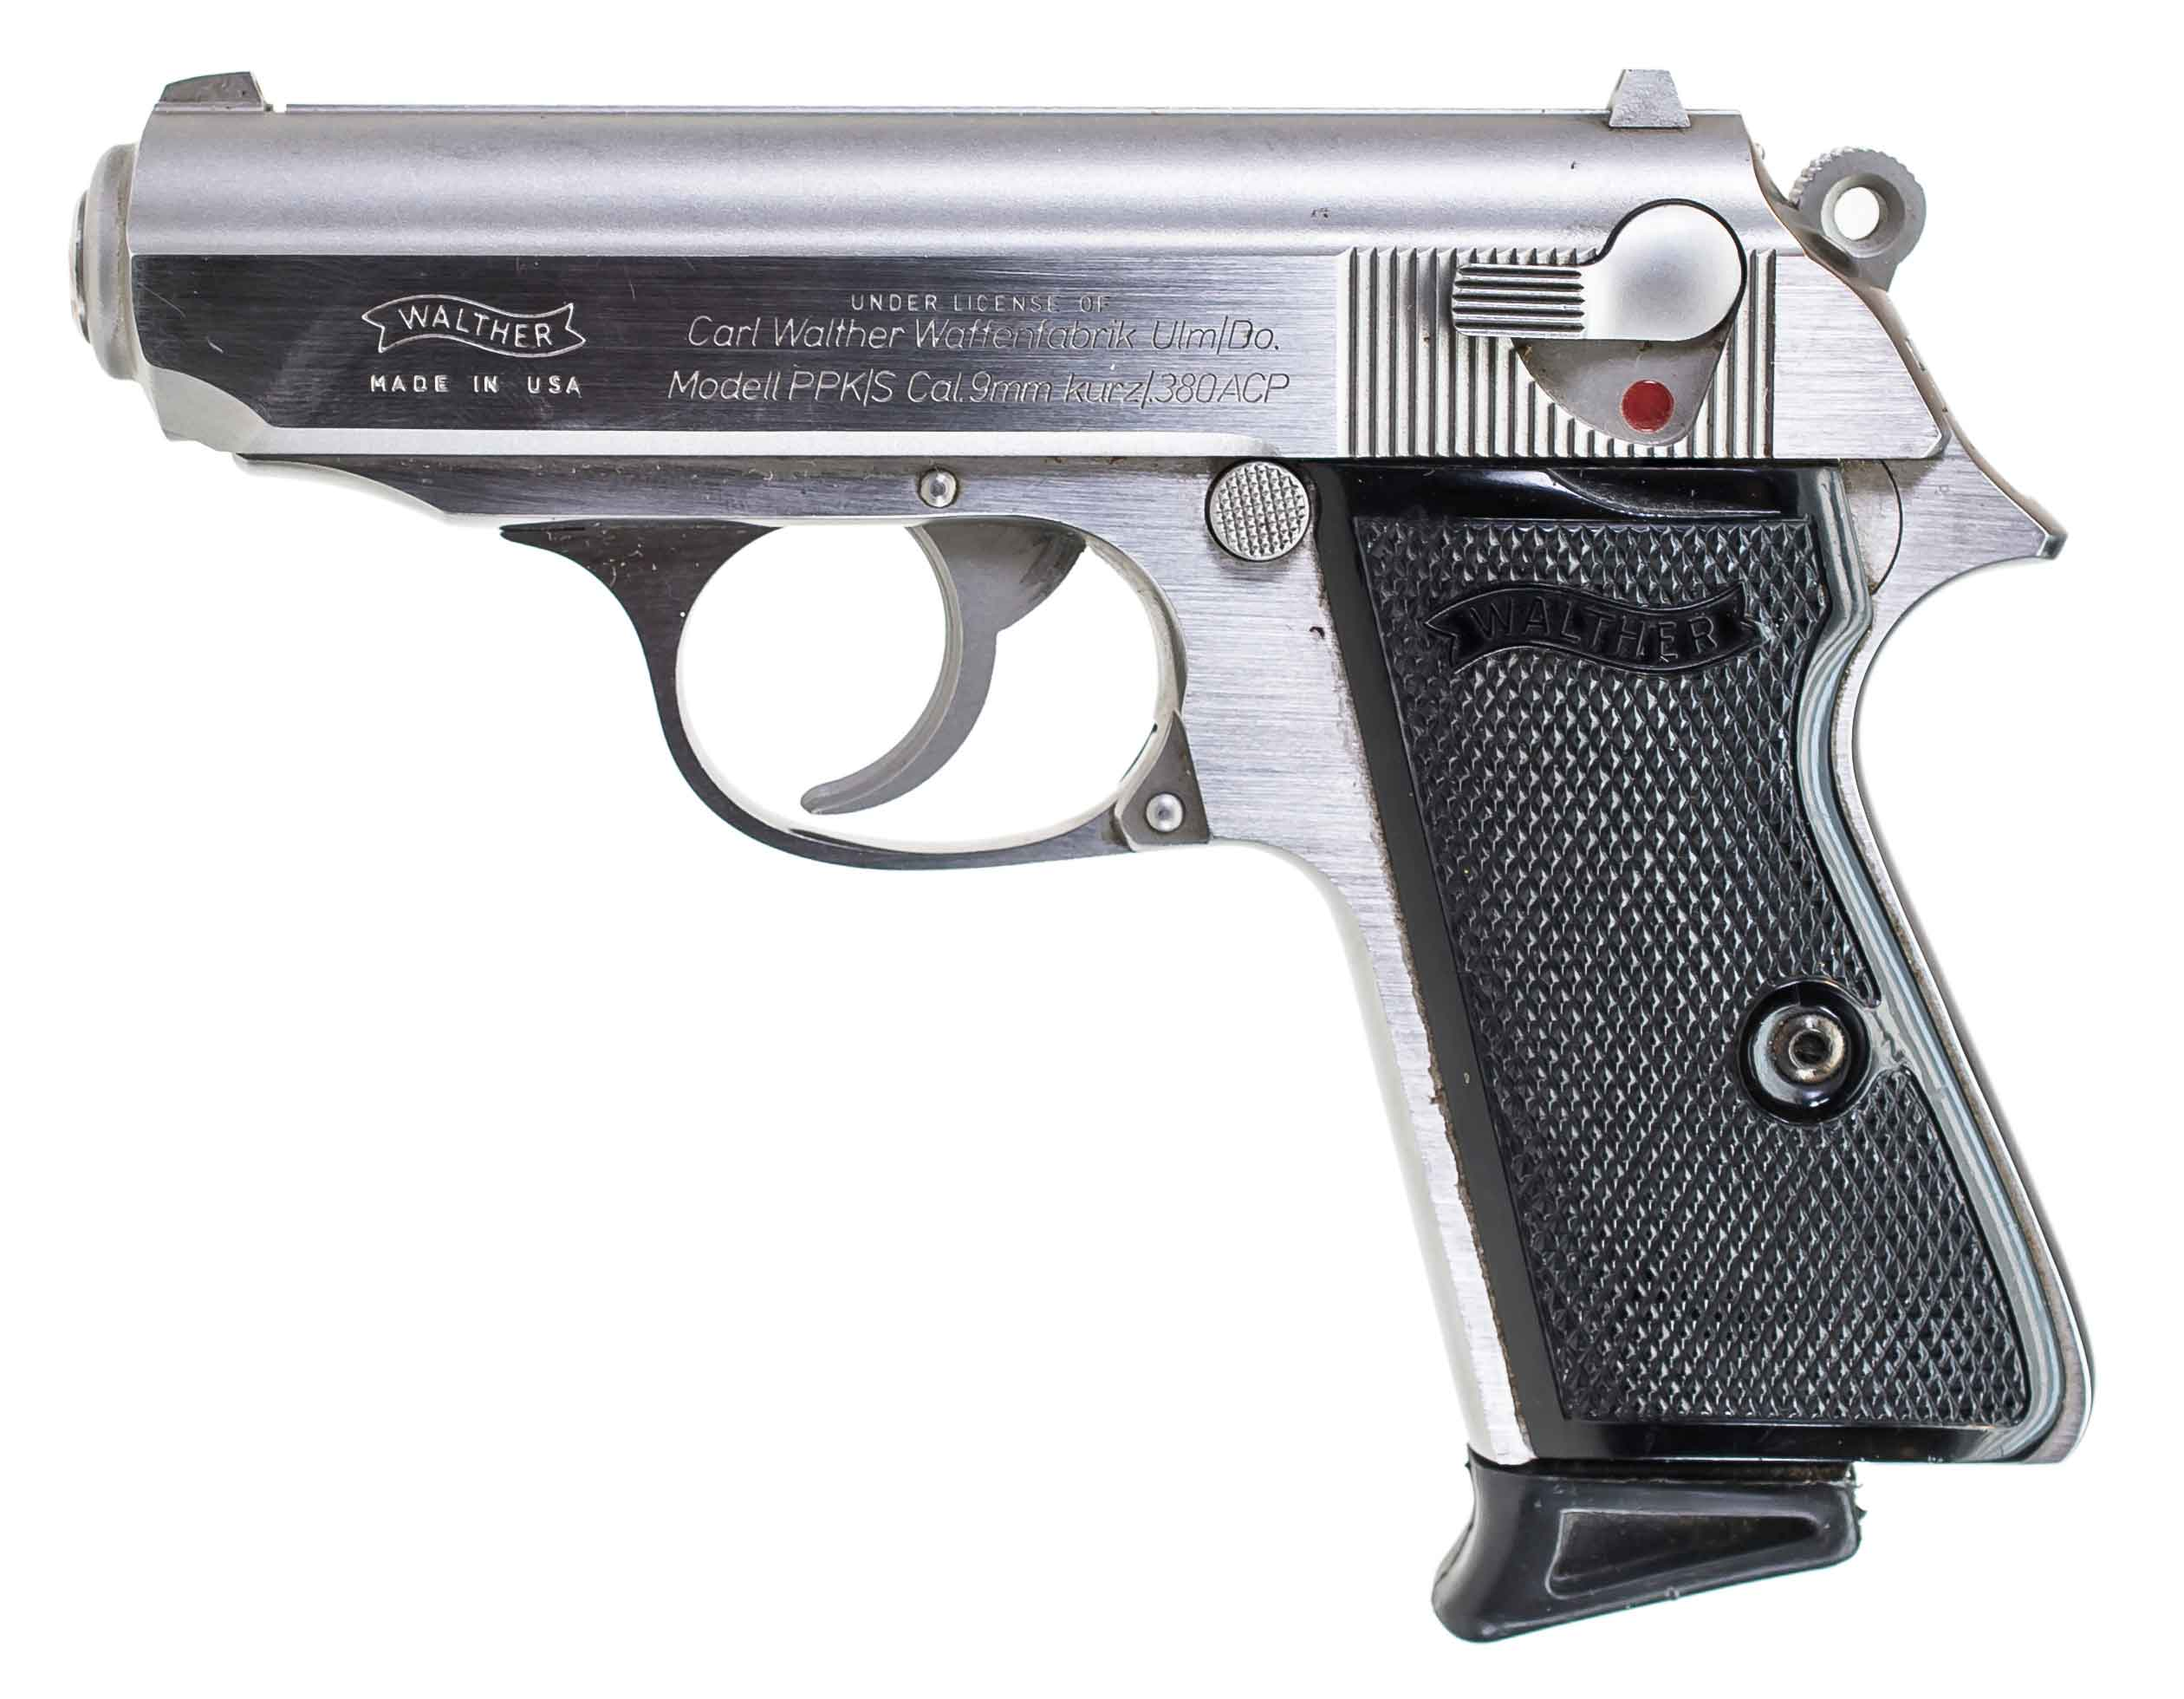 WALTHER PPK/S (Auction ID: 5275222, End Time : Sep. 15, 2016 22:20 ...